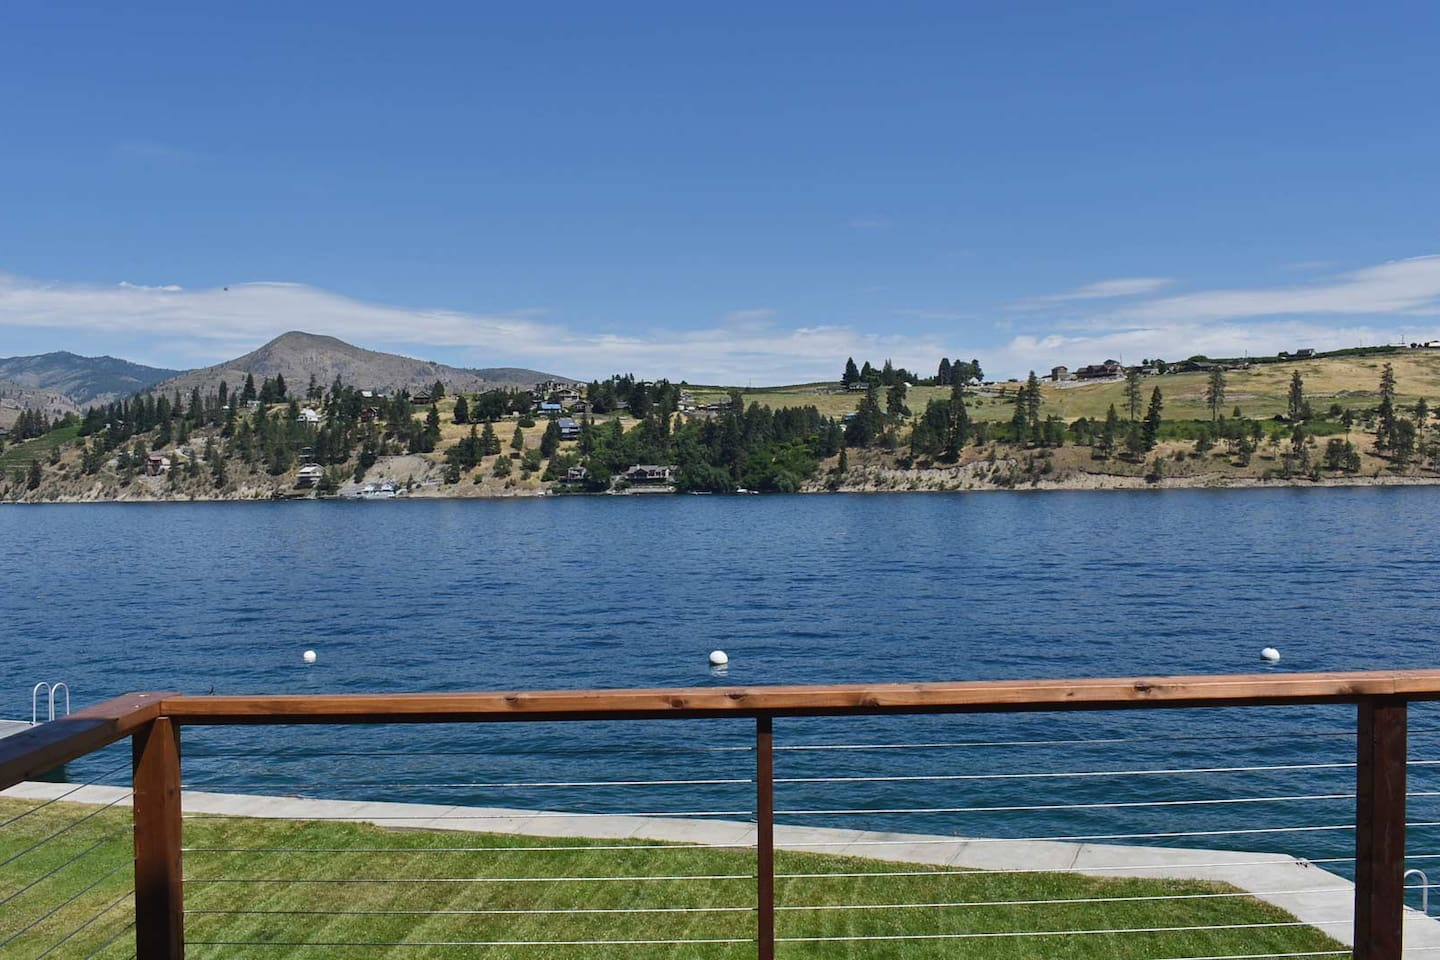 Enjoy gorgeous views and lakeside living from the new deck at this amazing waterfront home on beautiful Lake Chelan!